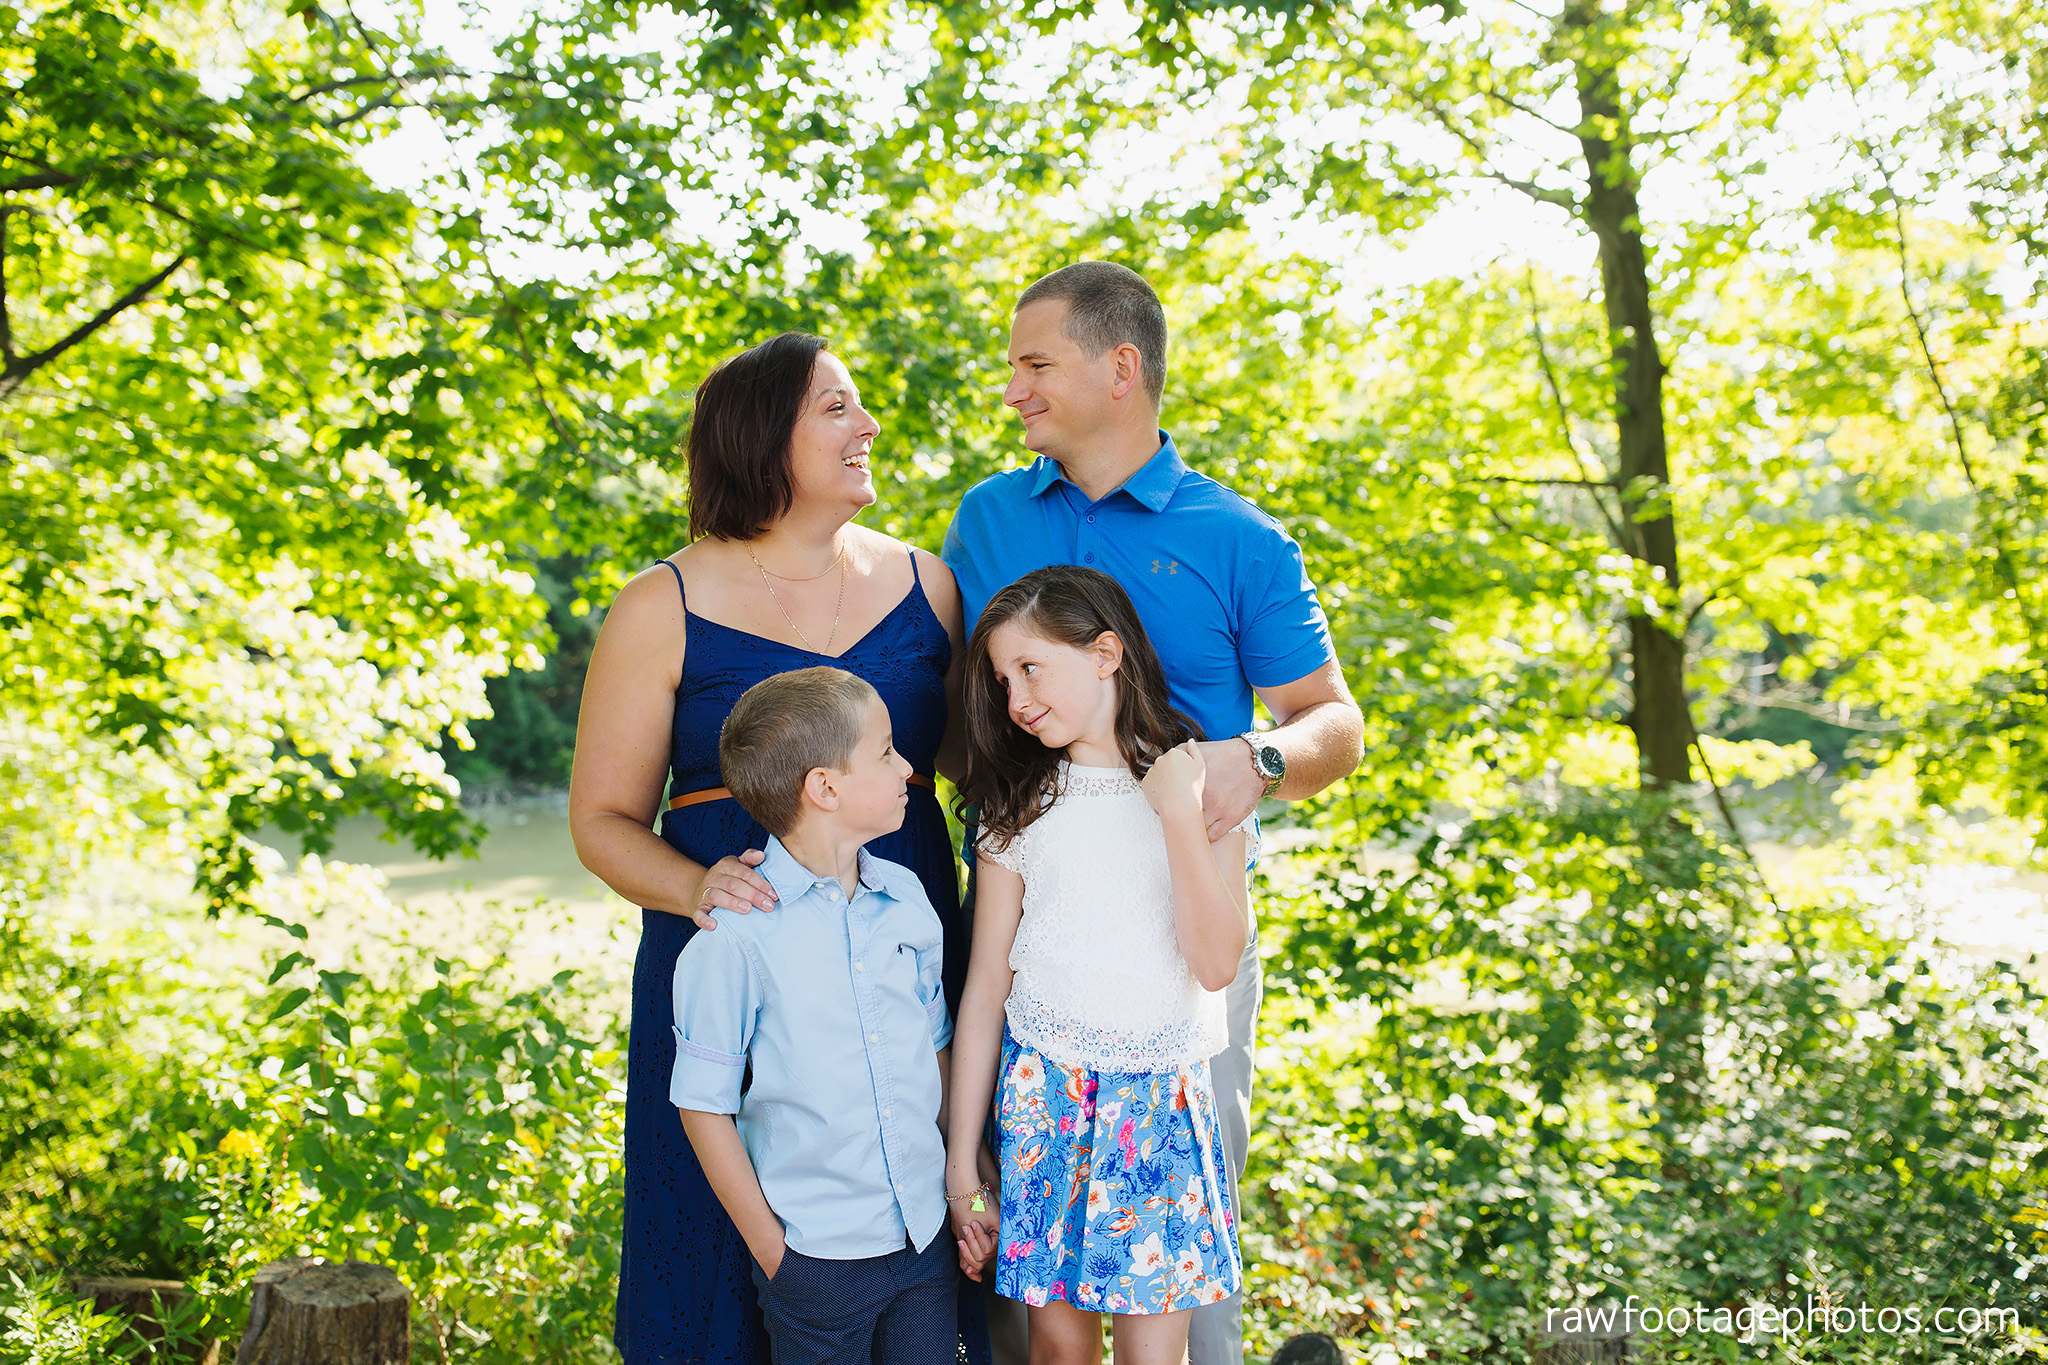 london_ontario_extended_family_backyard_session-raw_footage_photography024.jpg